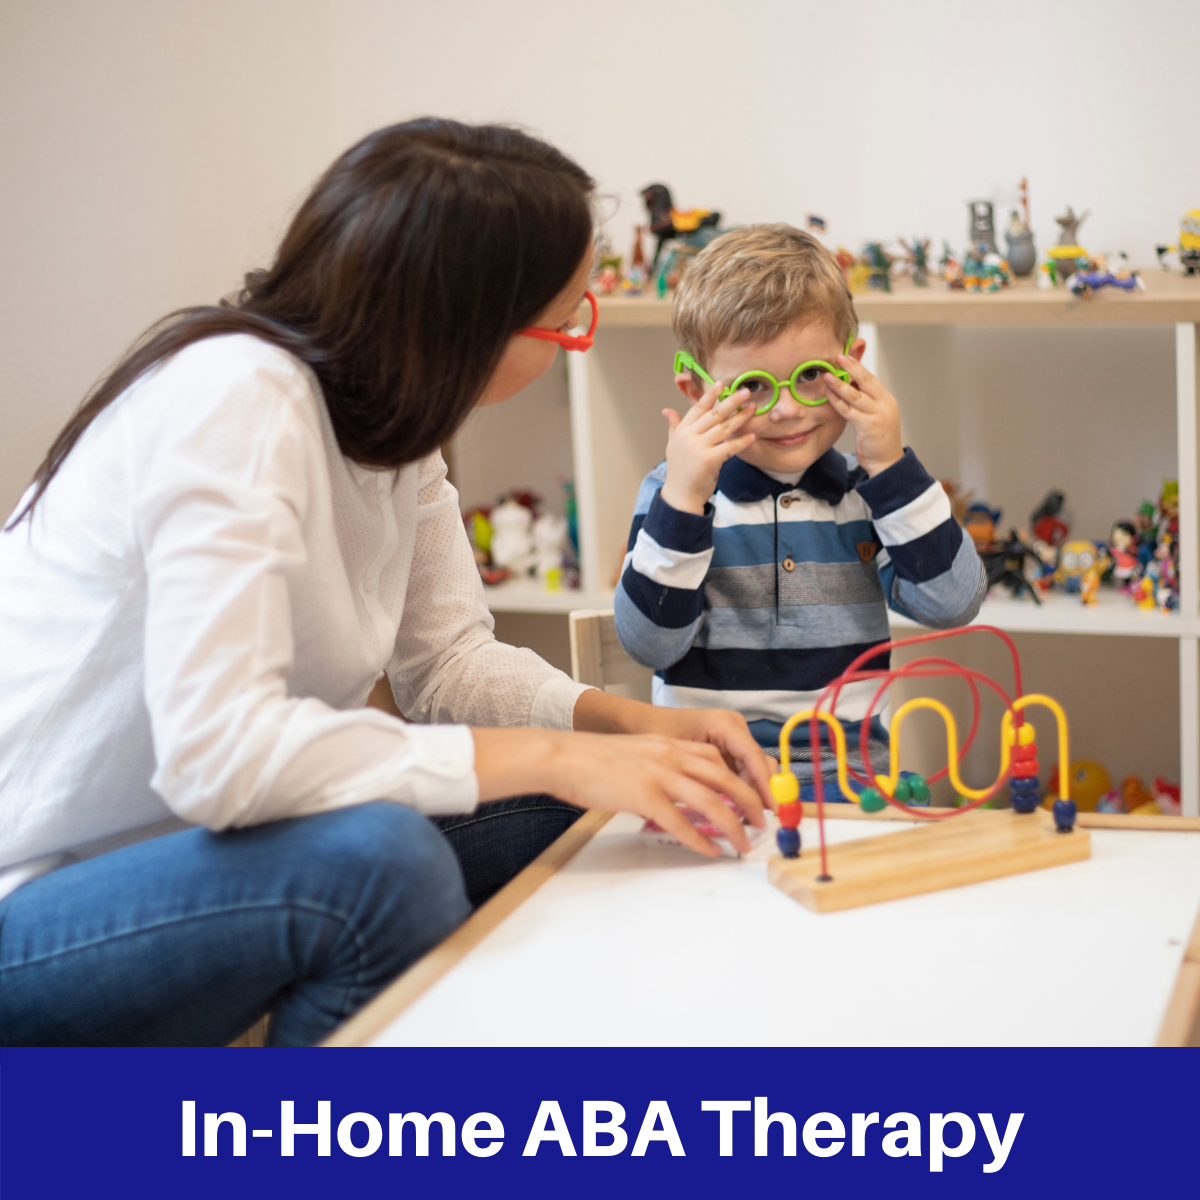 In-Home ABA Therapy